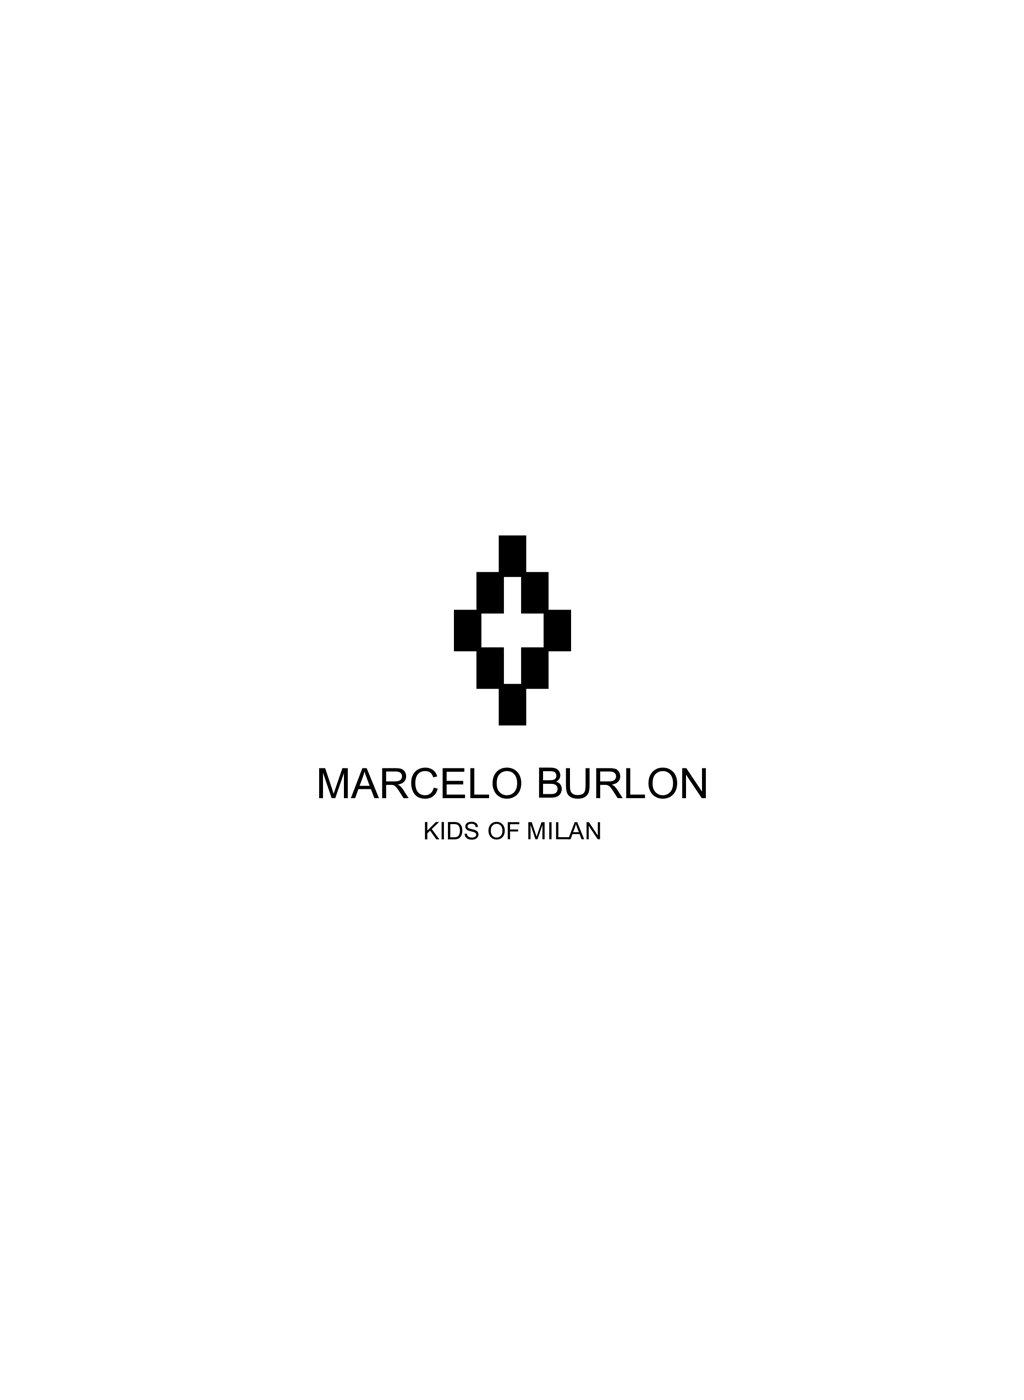 https://shop.didibimbo.com/media/marcelo-burlon-homepage-4.jpg